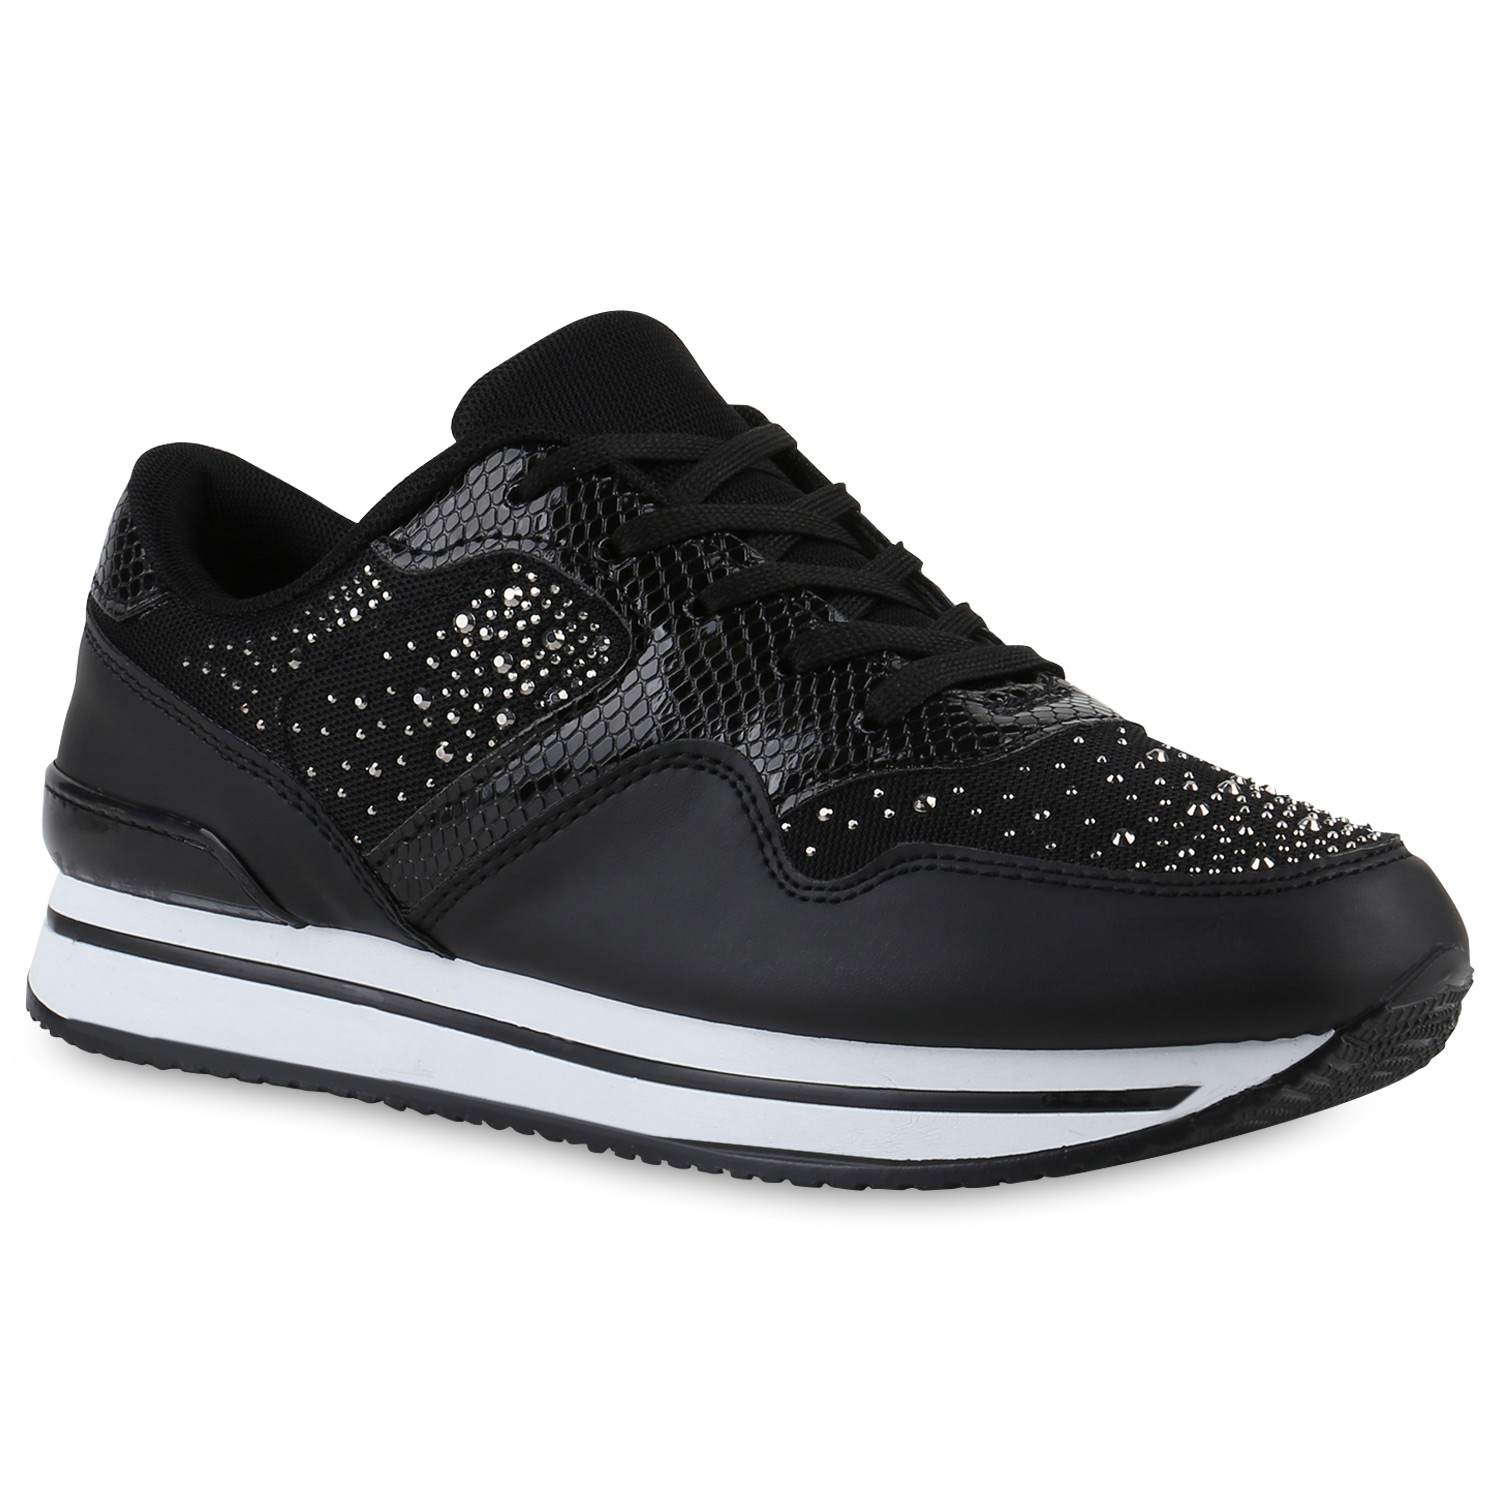 damen plateau sneaker lack strass snake bequeme. Black Bedroom Furniture Sets. Home Design Ideas